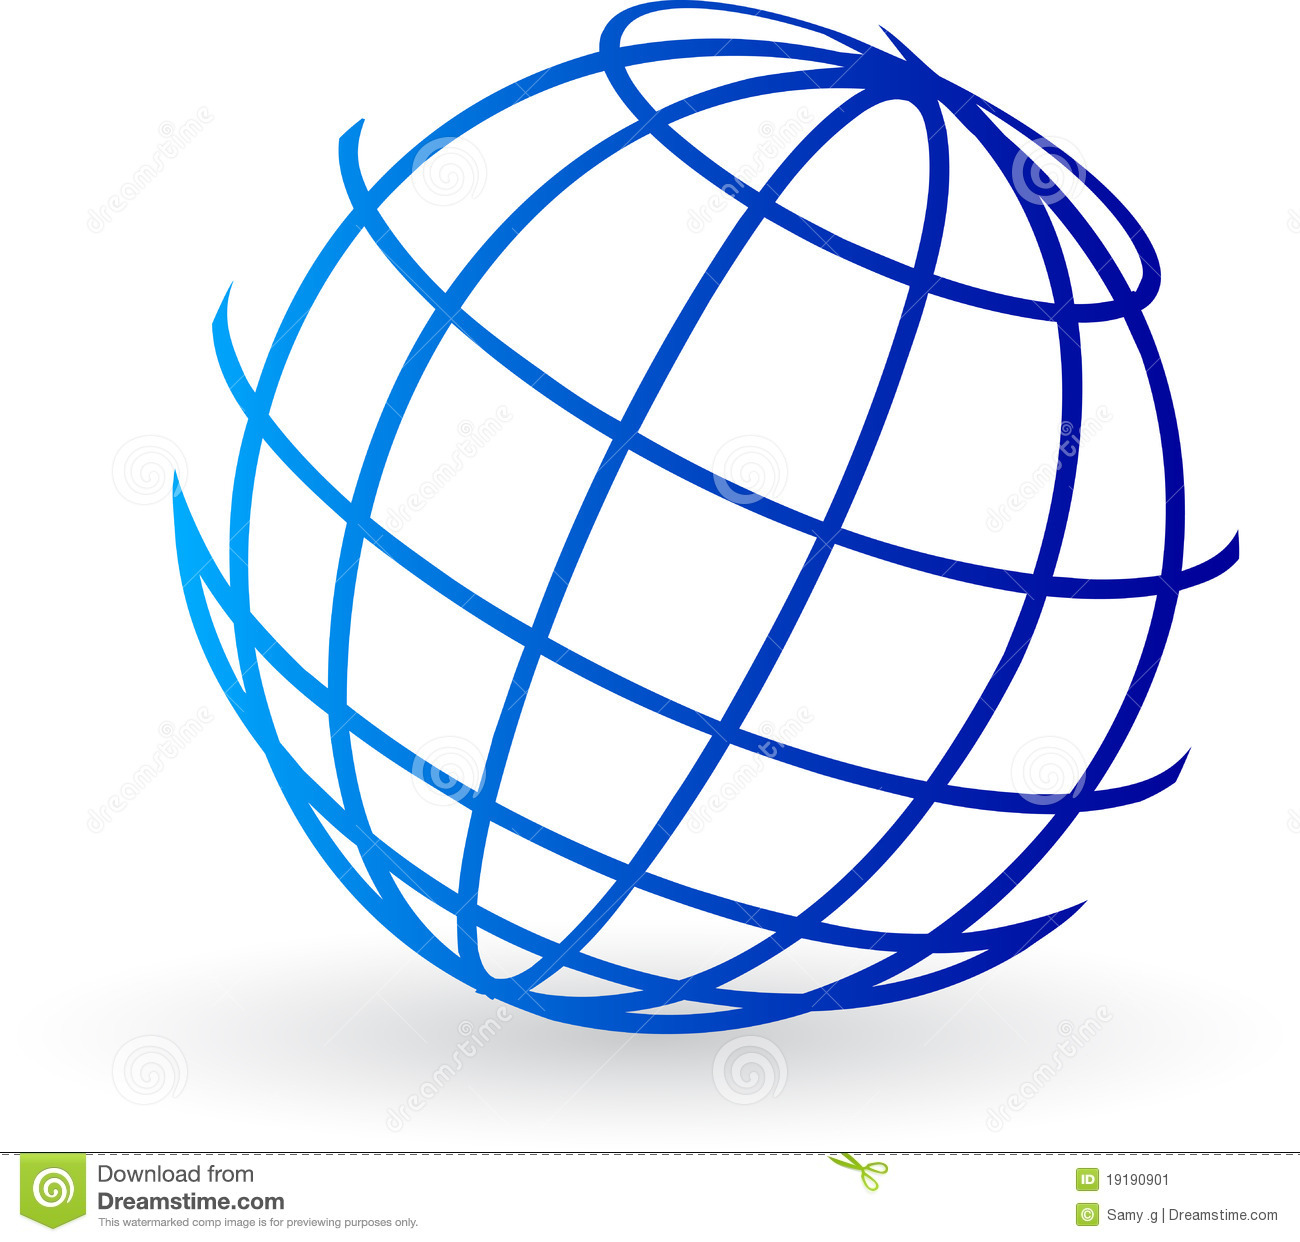 Globe logo stock vector. Illustration of communication.